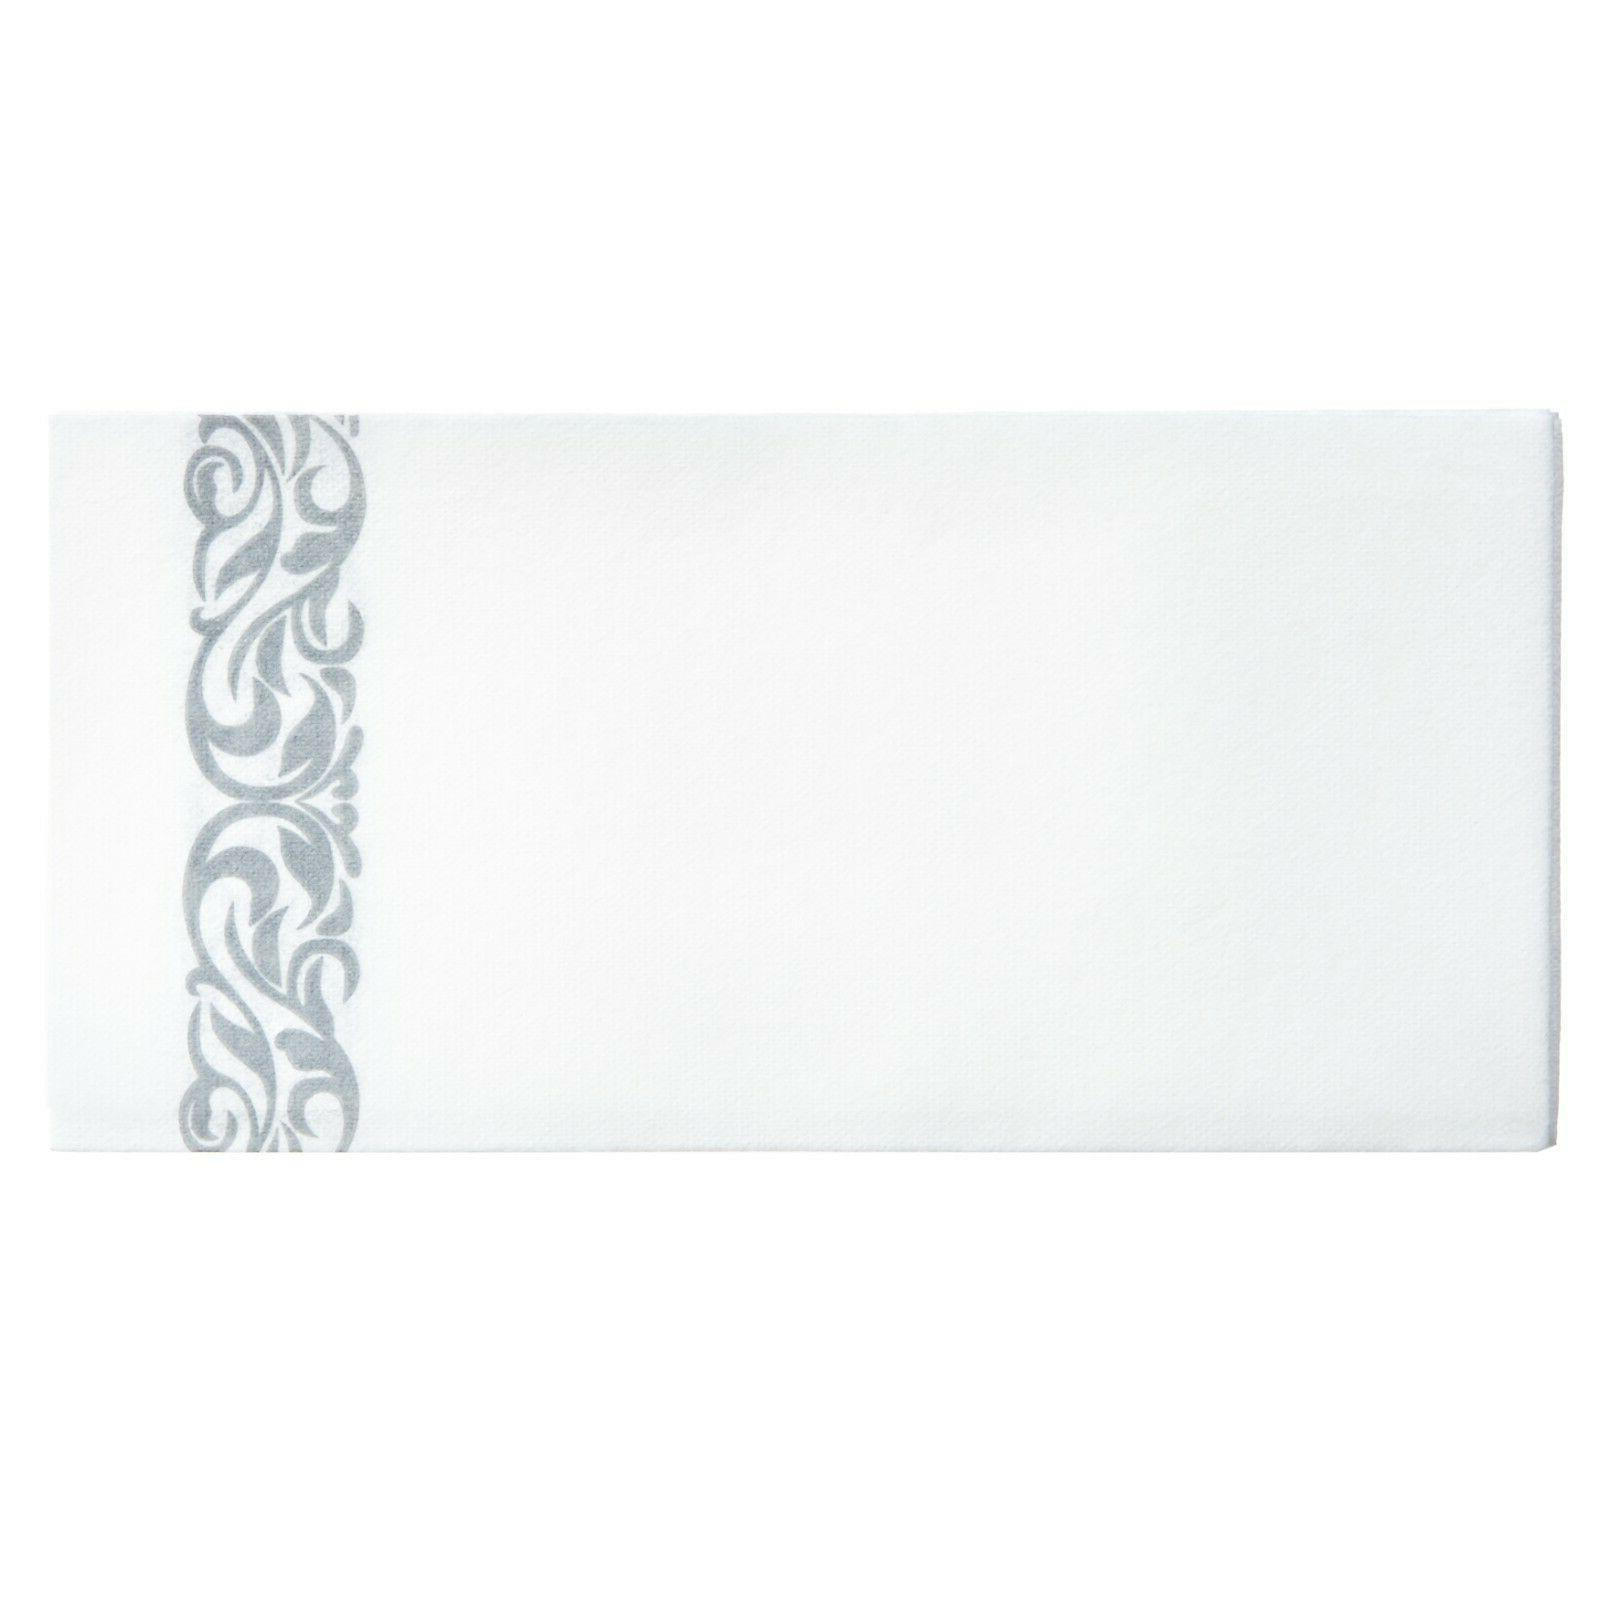 Disposable Towels and Linen-Feel Paper Guest